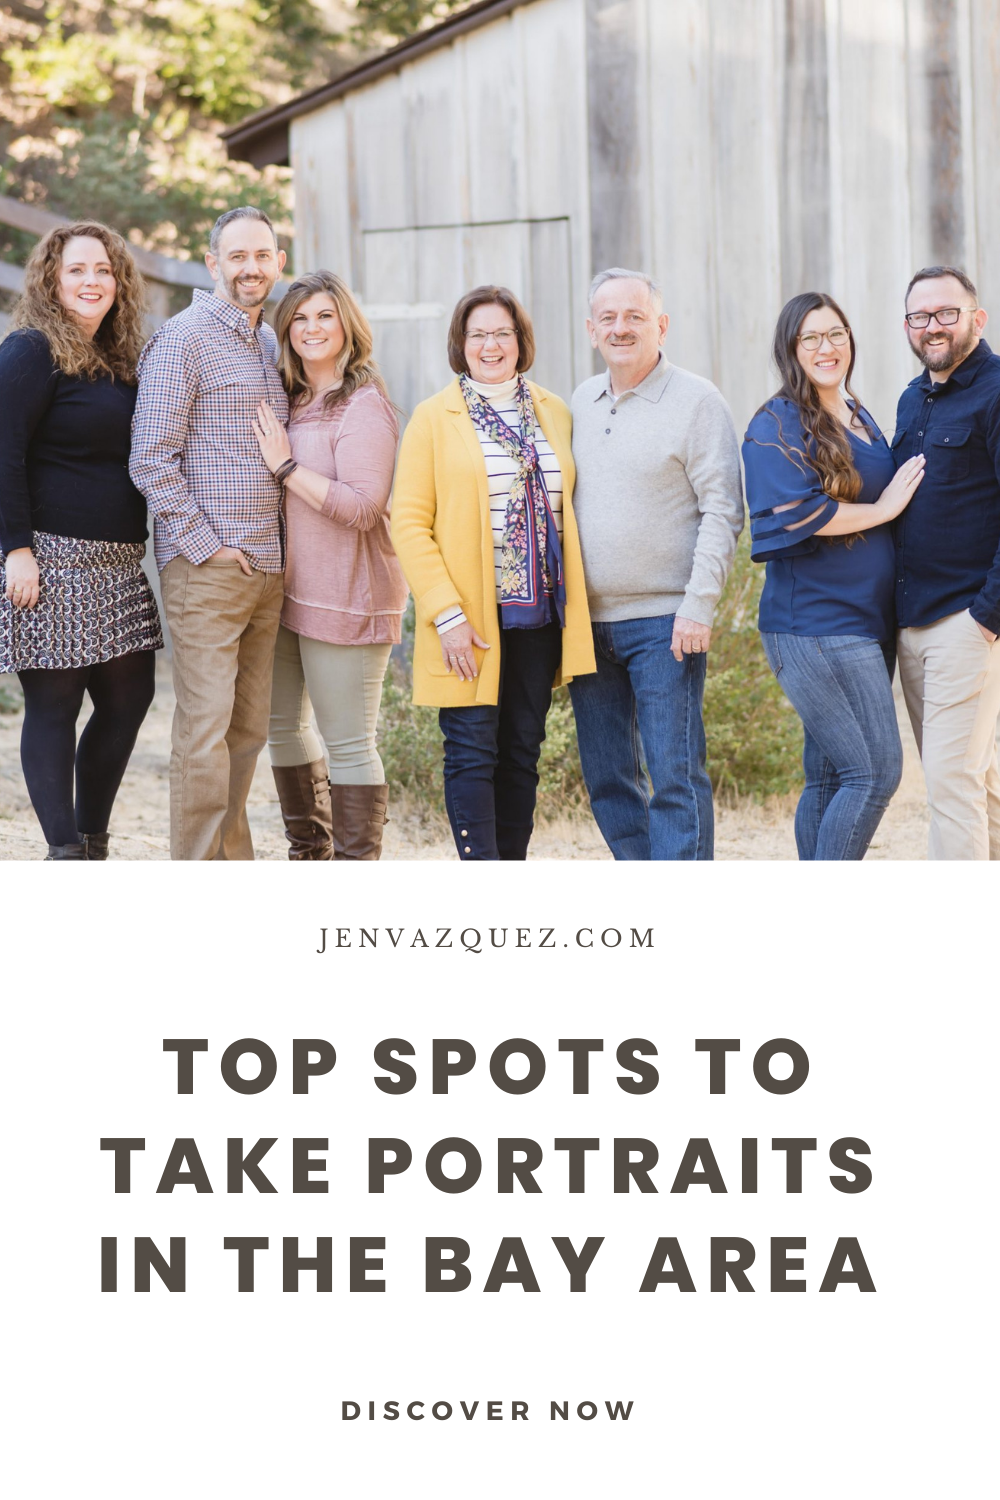 Click here to find out the top 5 Spots to Take Portraits in the Bay Area for maternity, engagement sessions, family portraits and so much more by Jen Vazquez